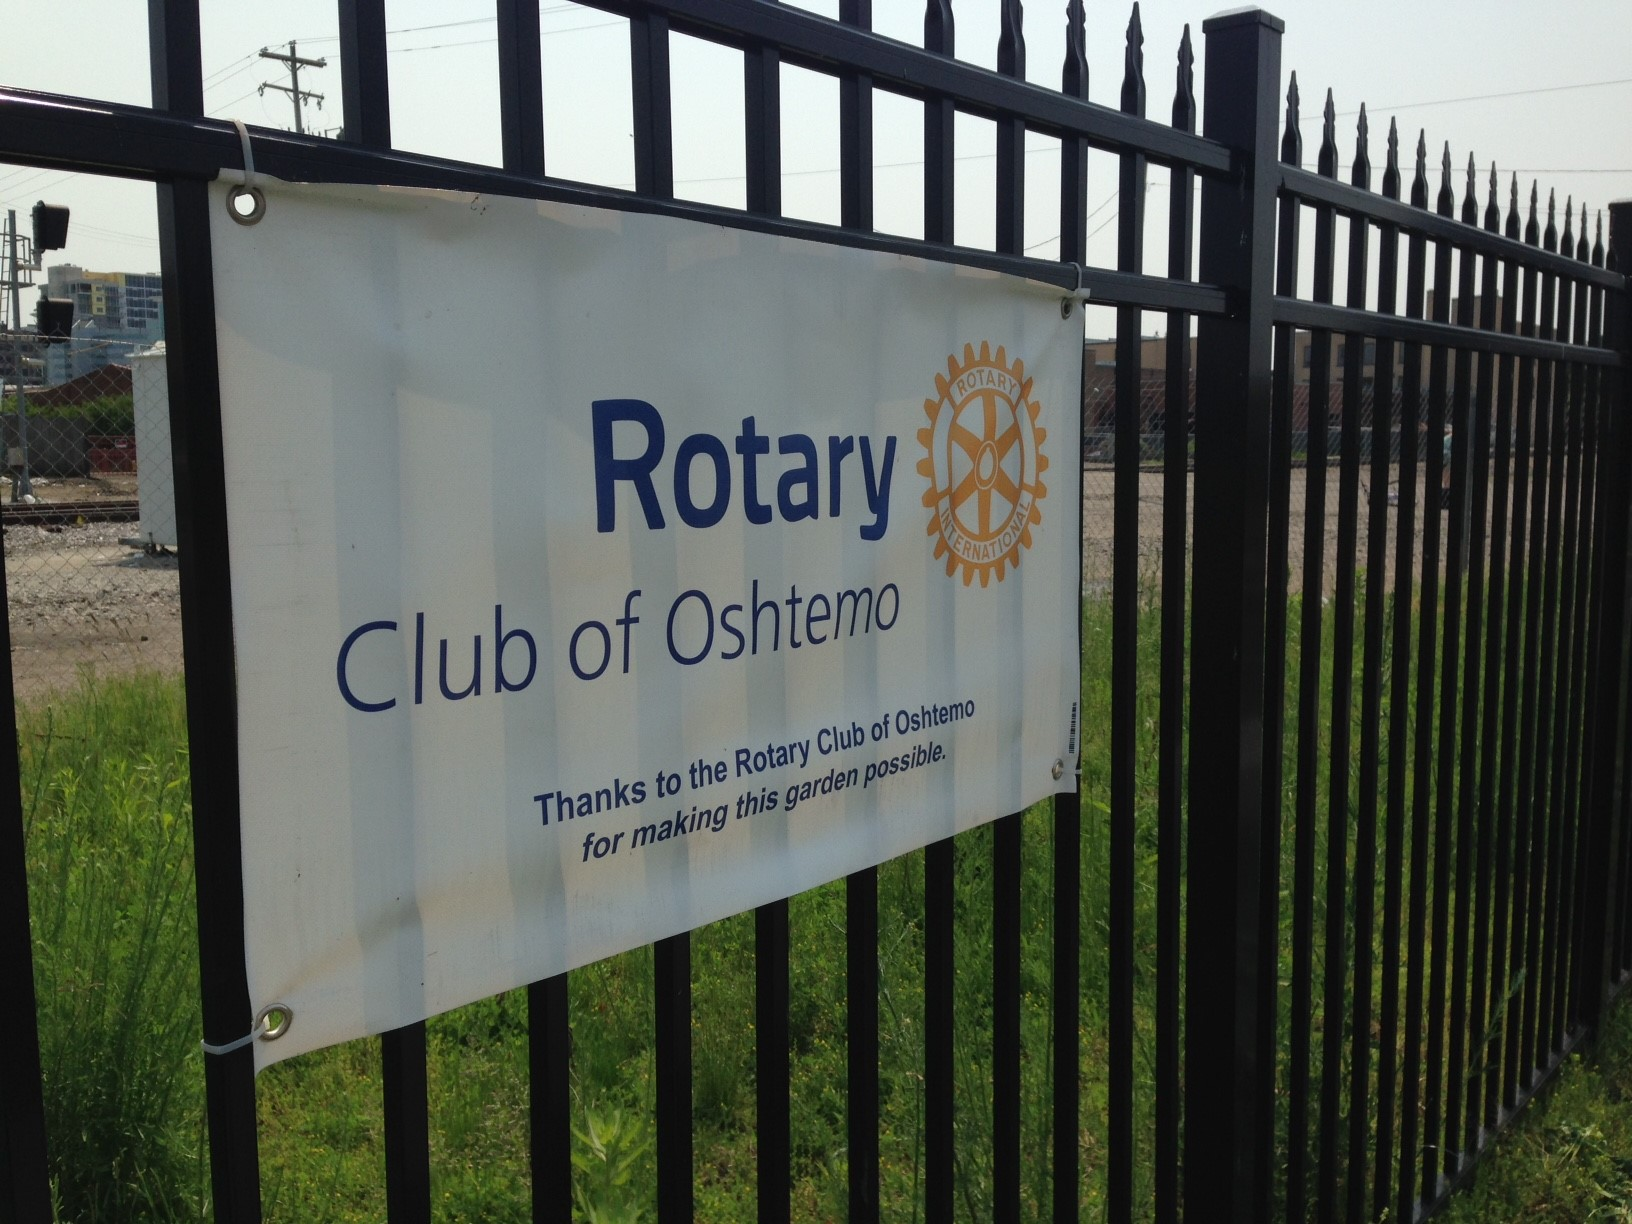 Thanks to the Rotary Club of Oshtemo for making our garden possible!